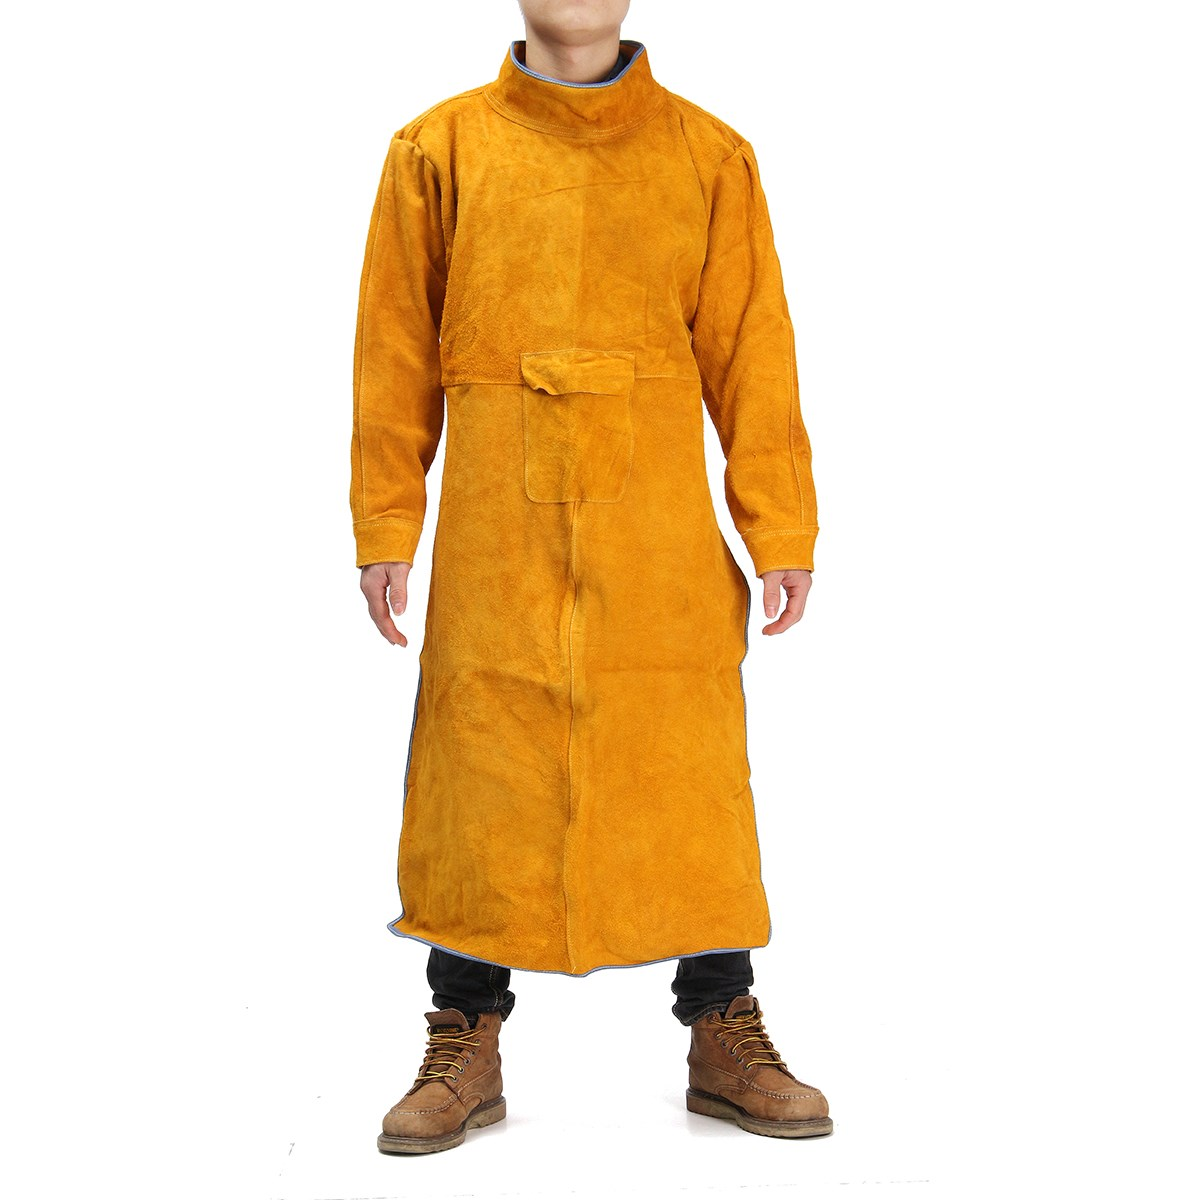 NEW Durable Leather Welding Long Coat Apron Protective Clothing Apparel Suit Welder Workplace Safety Clothing new safurance leather equipment apron